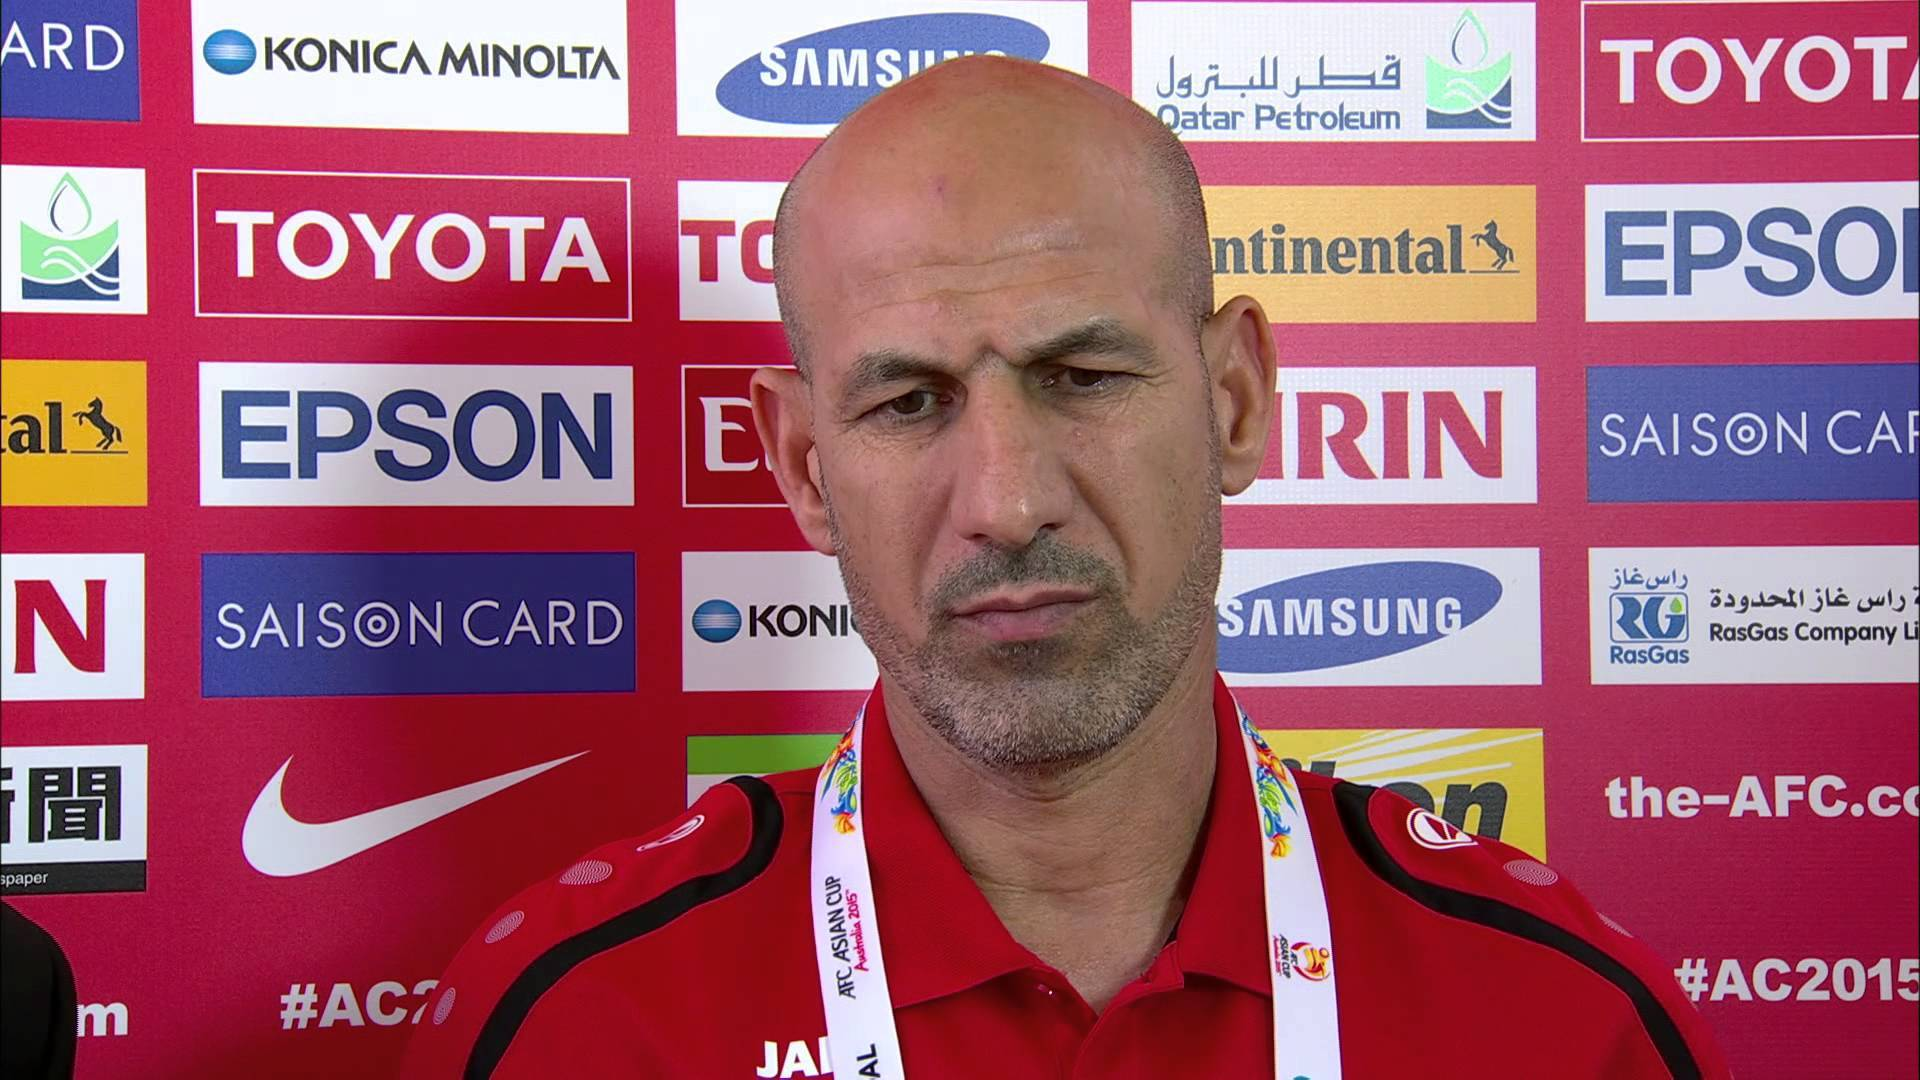 Iraq head coach sacked after World Cup qualification failure